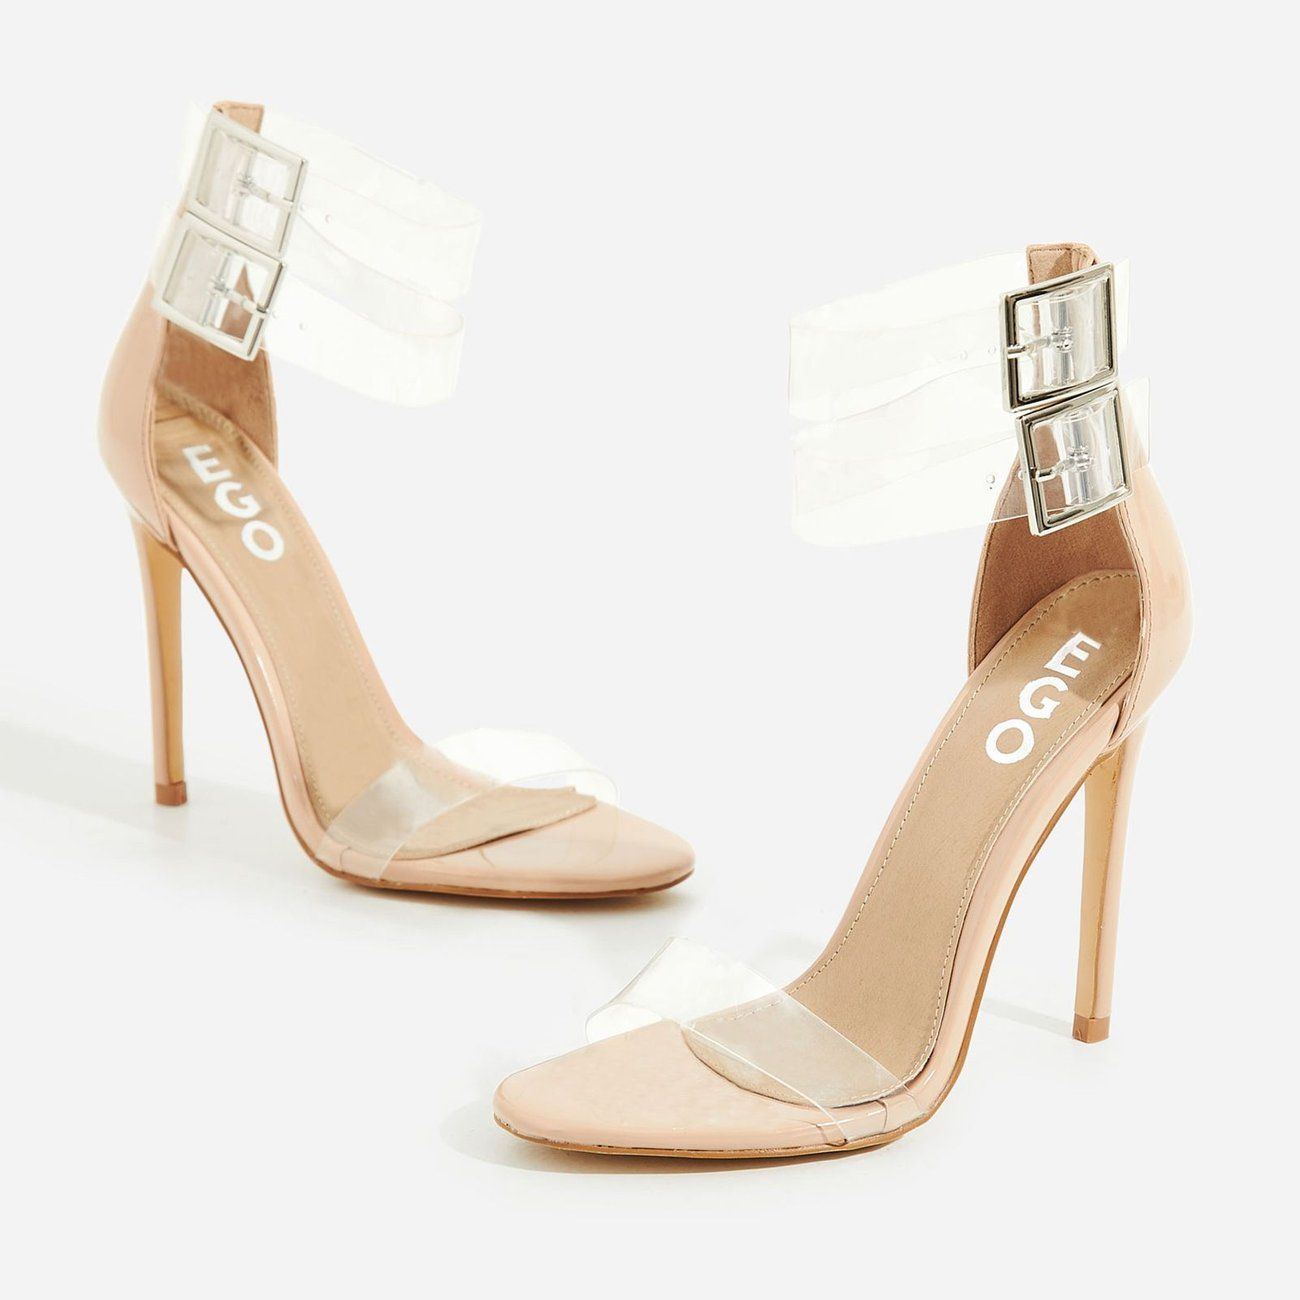 d9fb404a213 Add a sassin  touch to your shoedrobe with the Winnie nude patent heels.  With